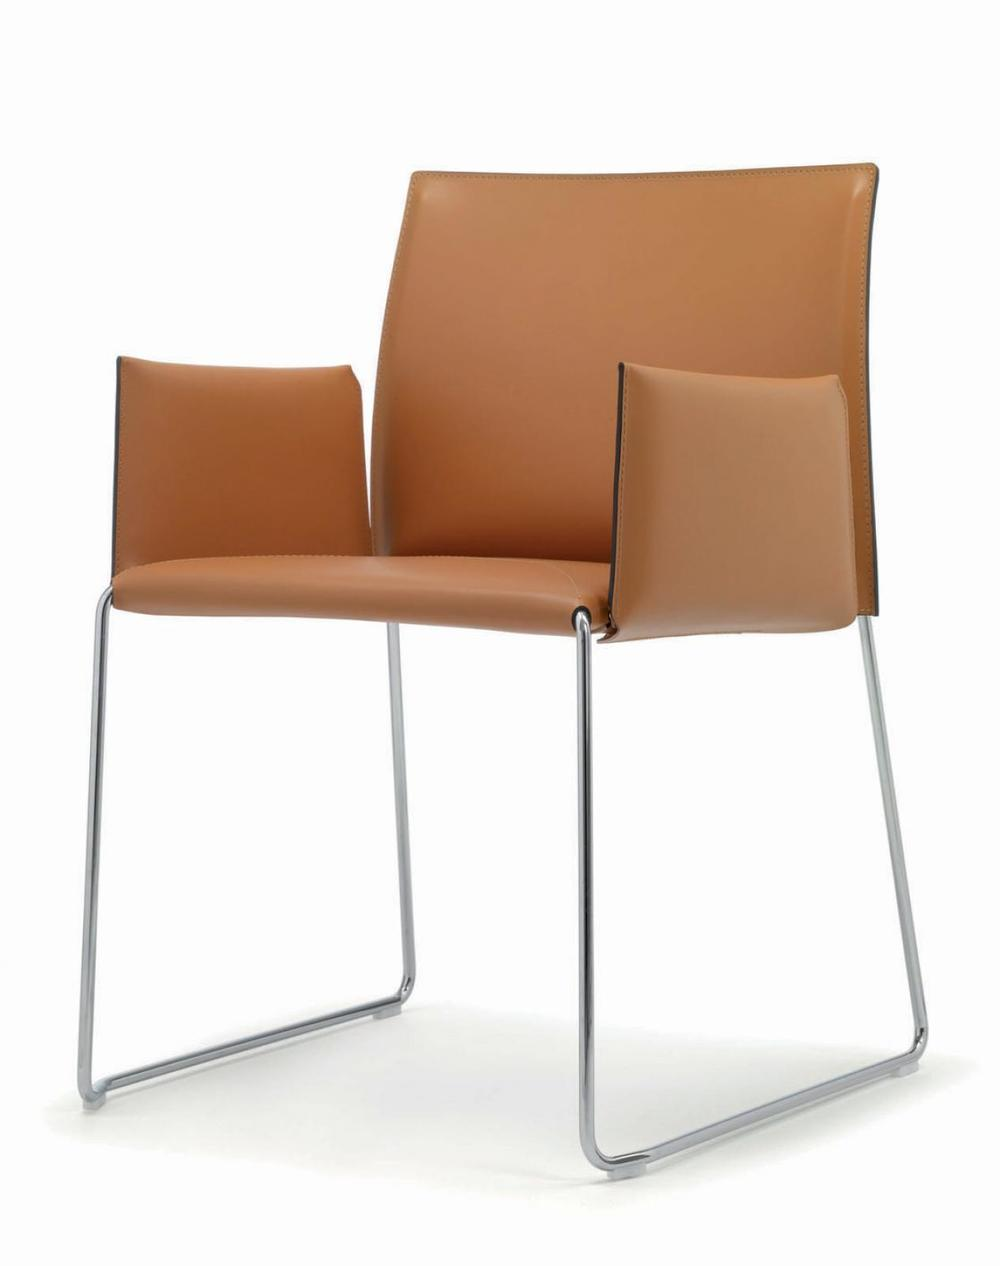 modern-leather-chairs-italian-furniture (11).jpg